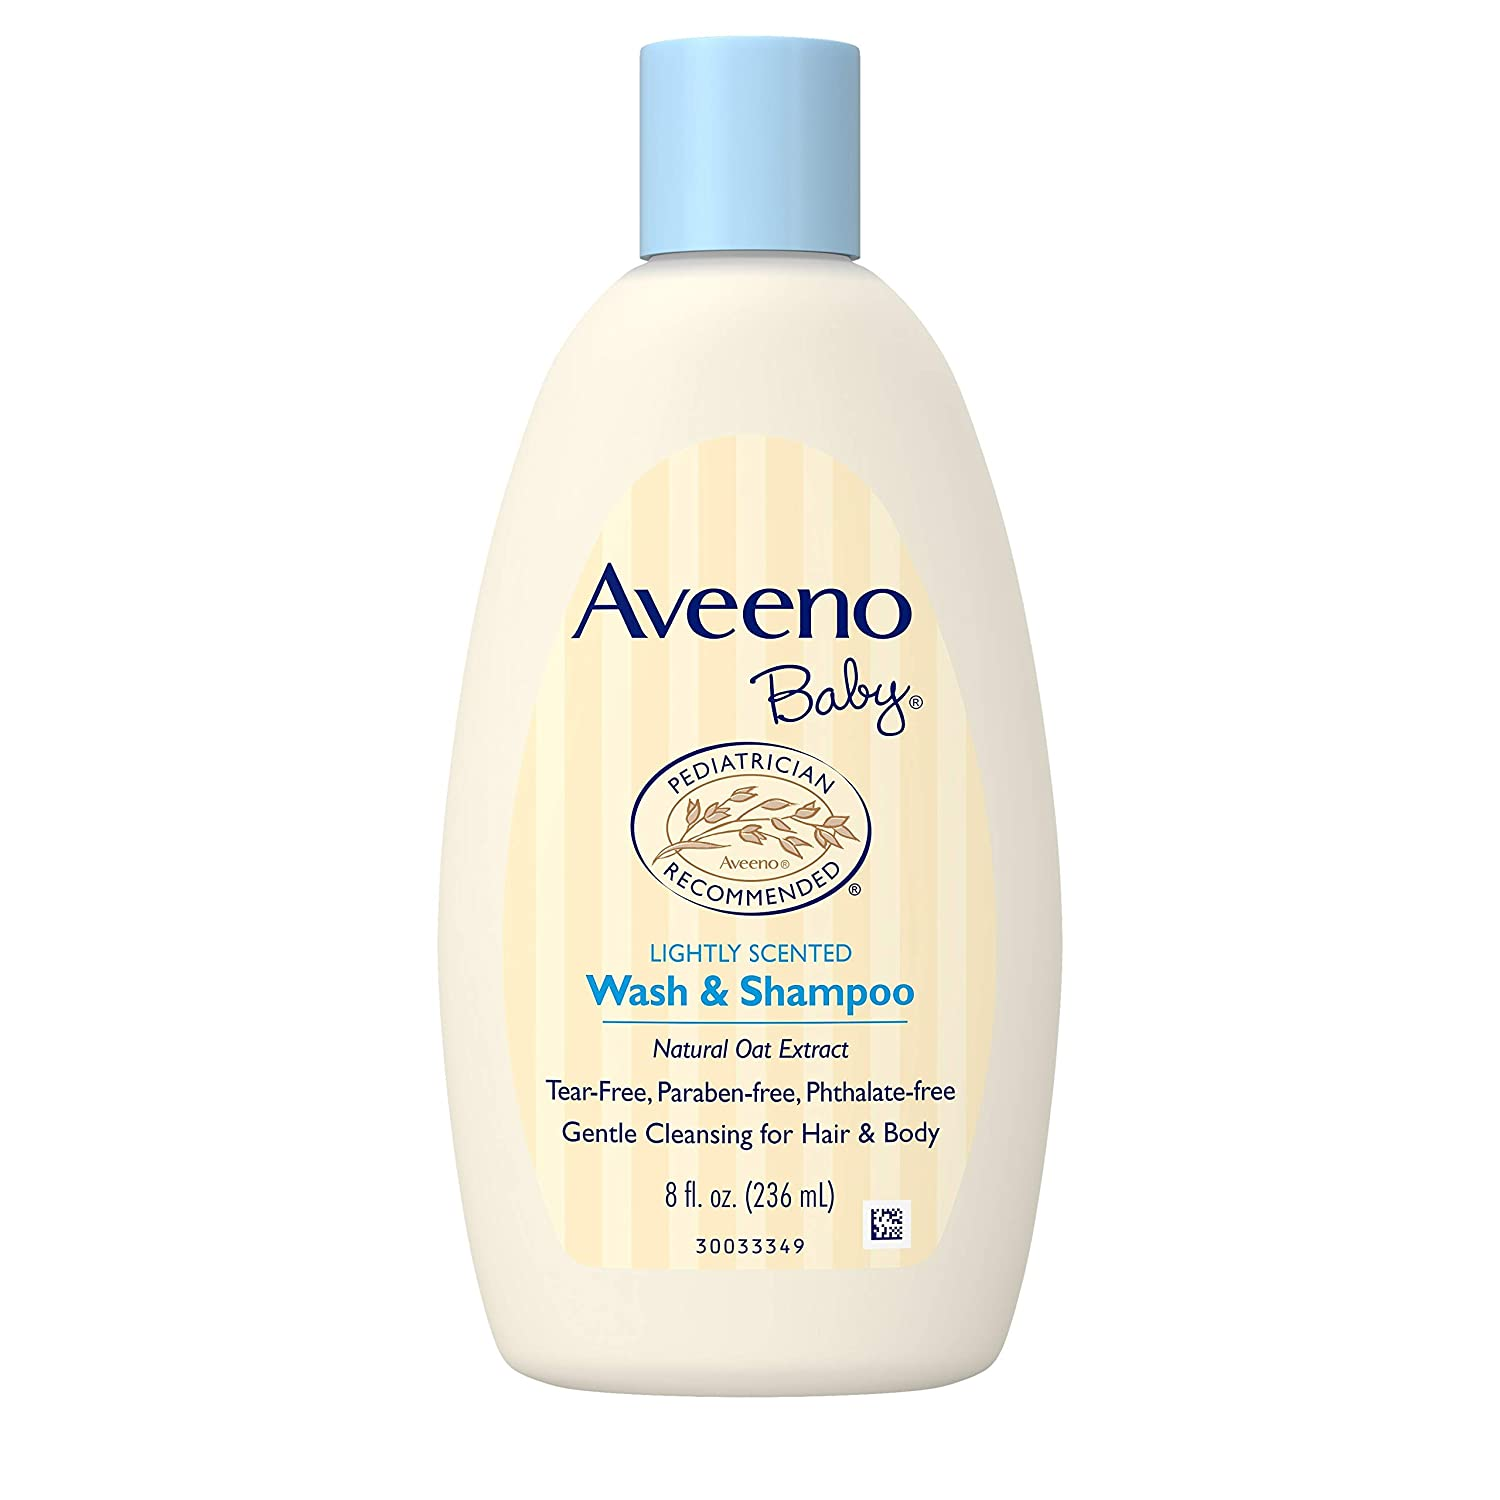 Aveeno Baby Gentle Wash & Shampoo With Natural Oat Extract, Tear-Free & Paraben-Free Formula For Hair & Body